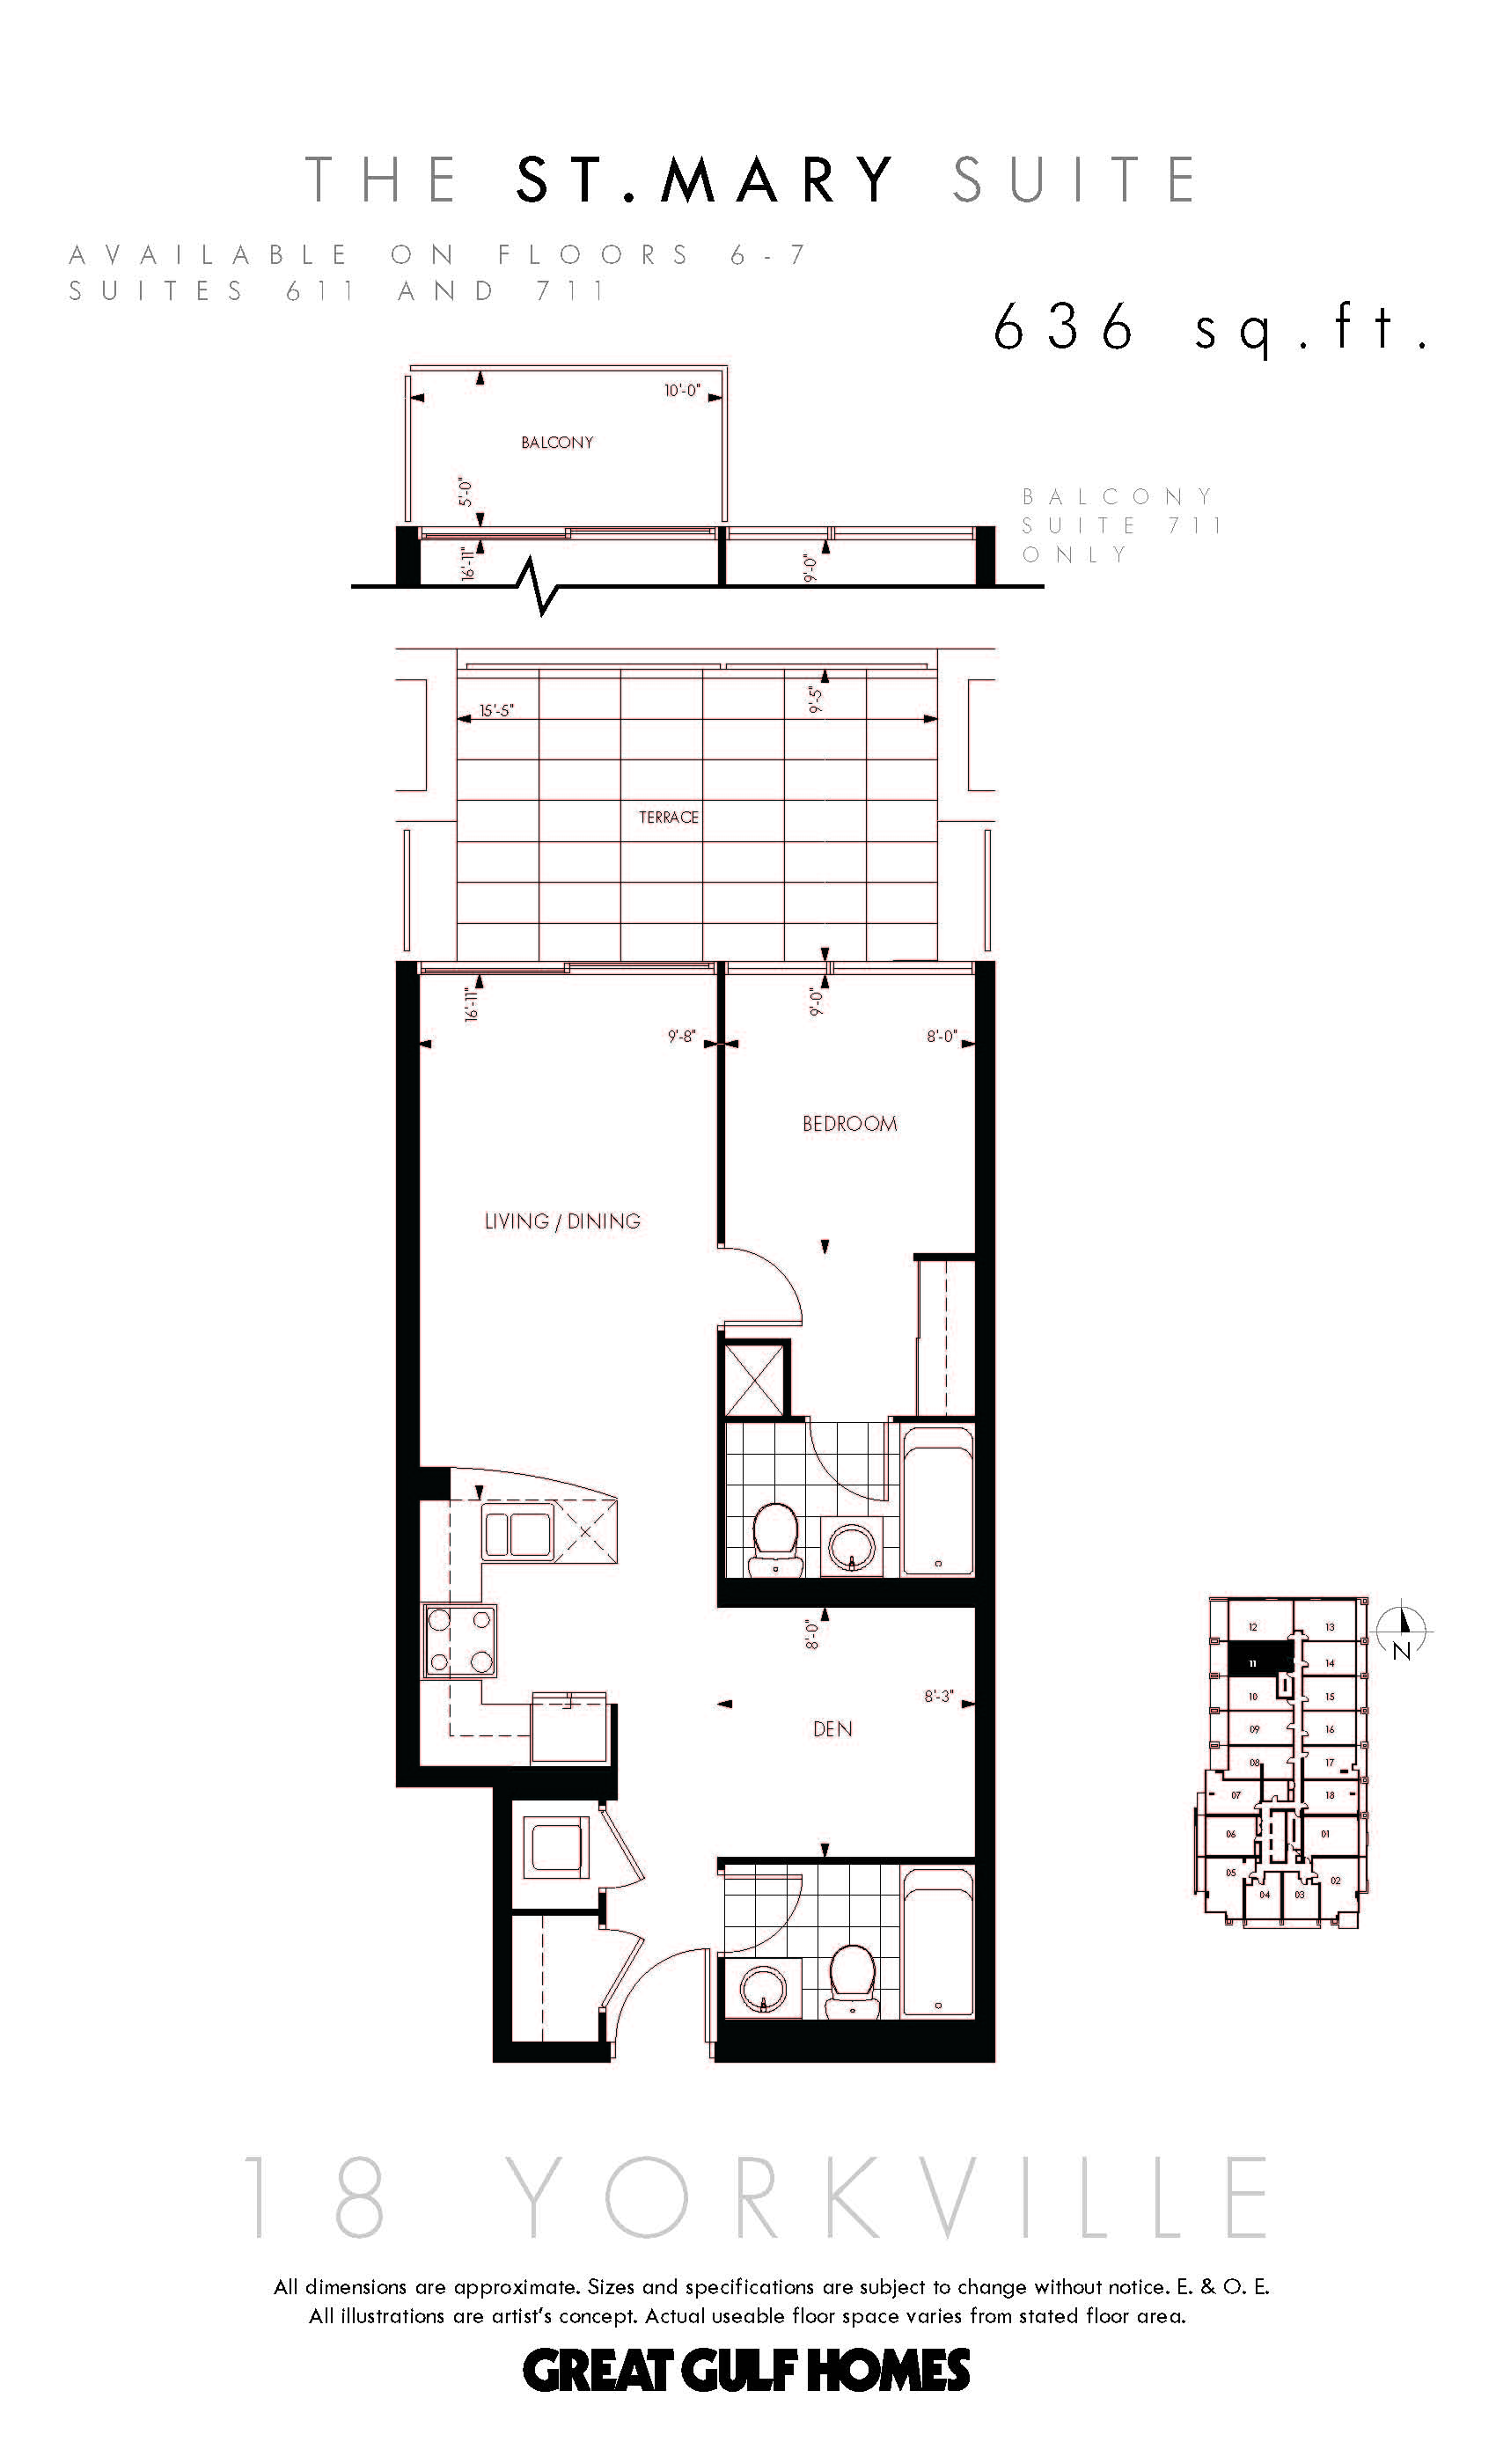 18yorkville floorplan st mary 18 yorkville condos at 18